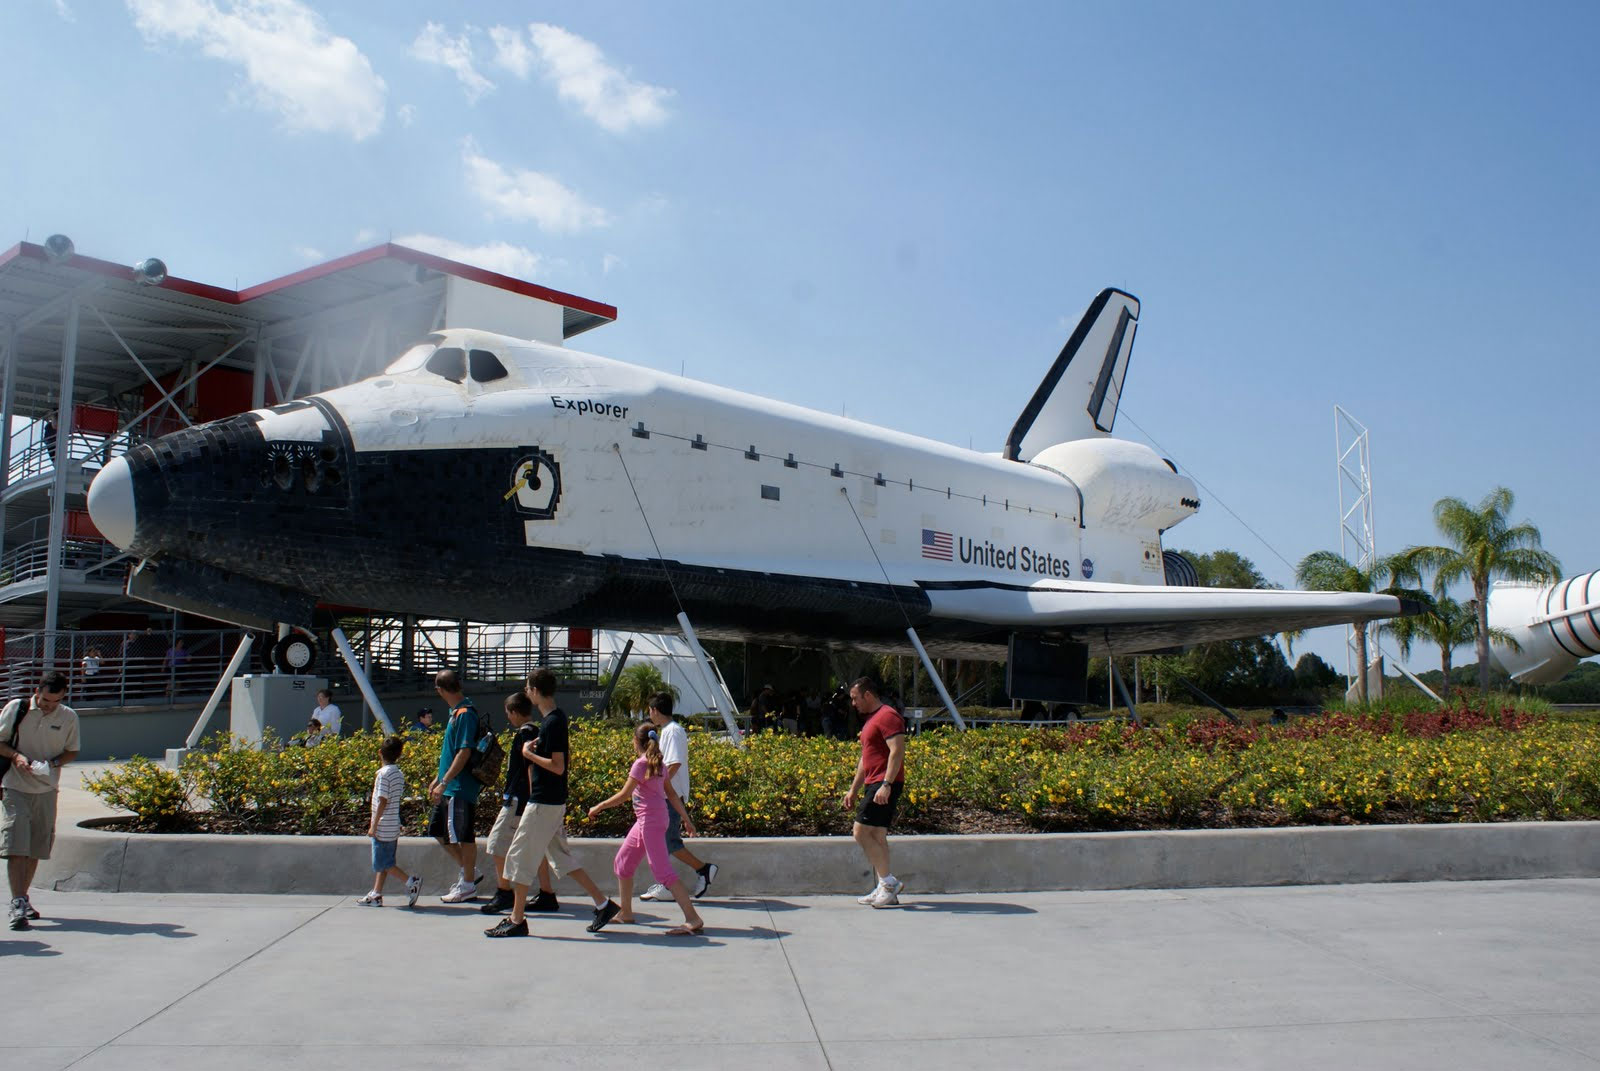 space shuttle explorer is real - photo #35